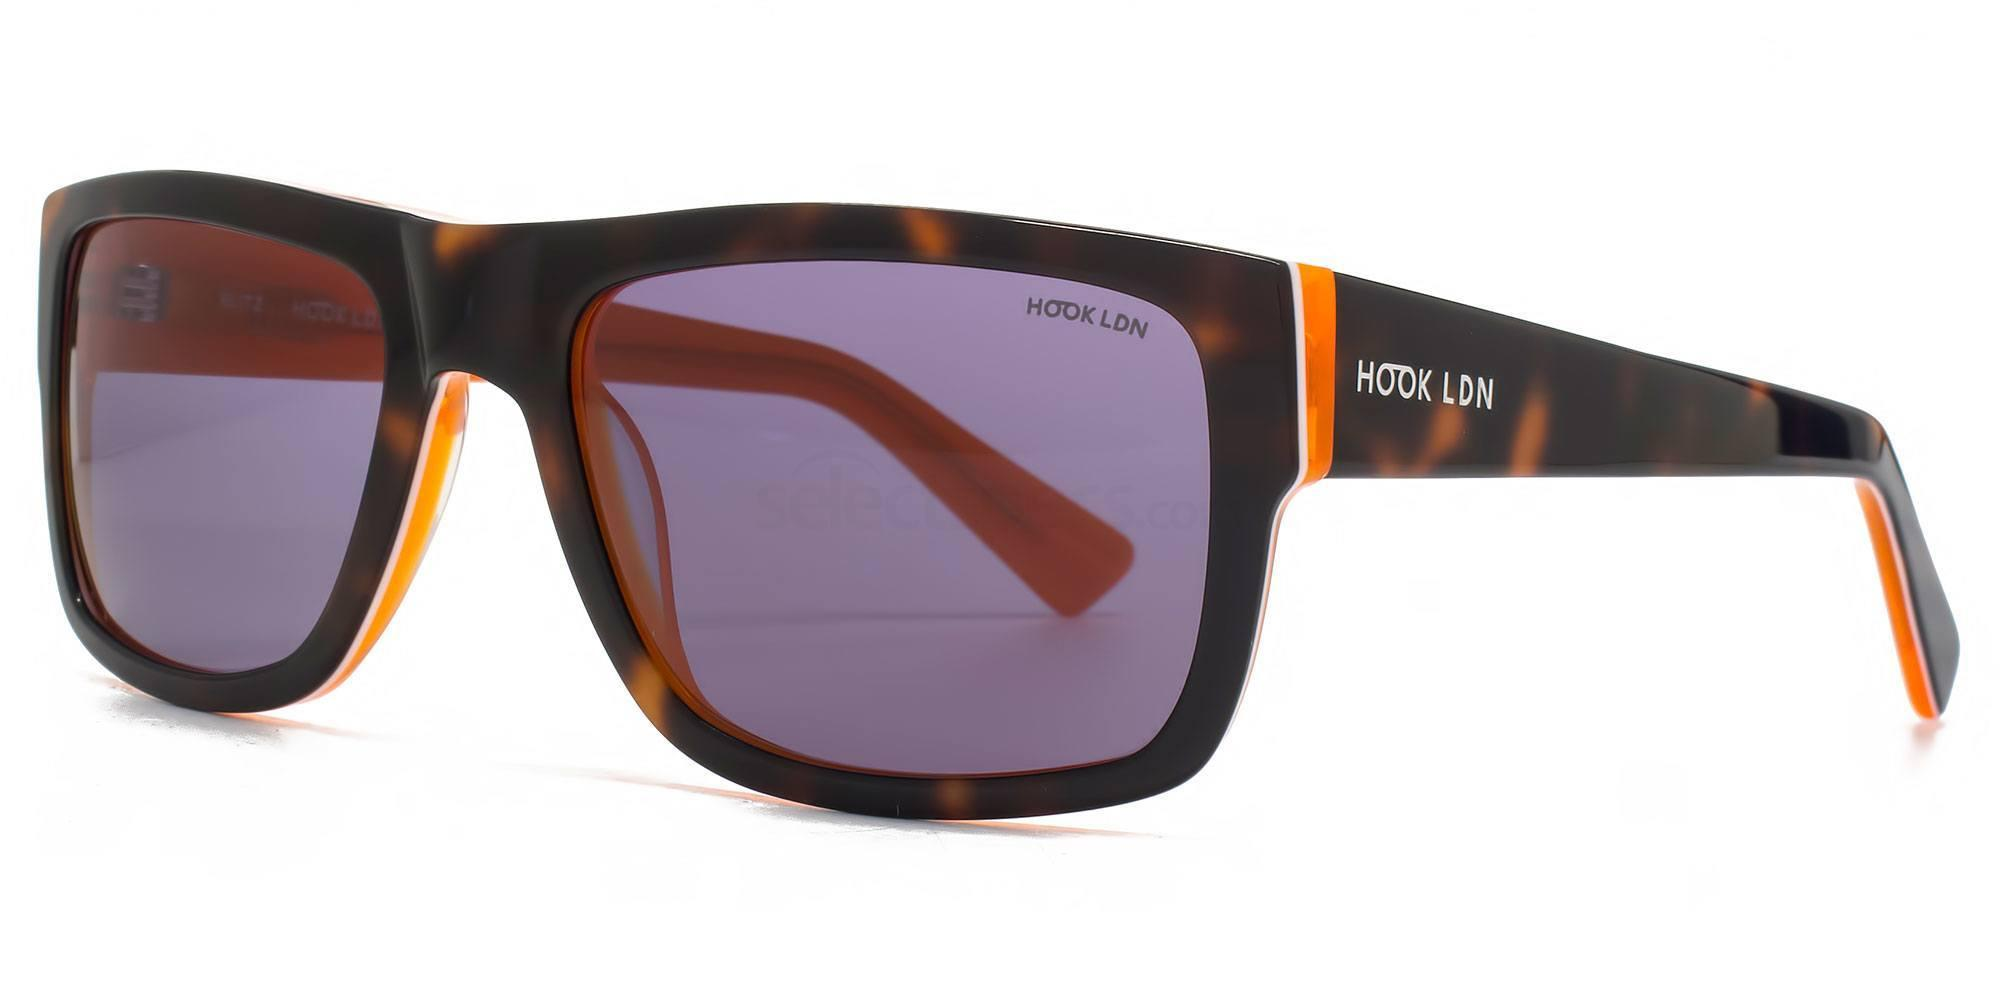 ORG HK003 - BLITZ Sunglasses, Hook LDN